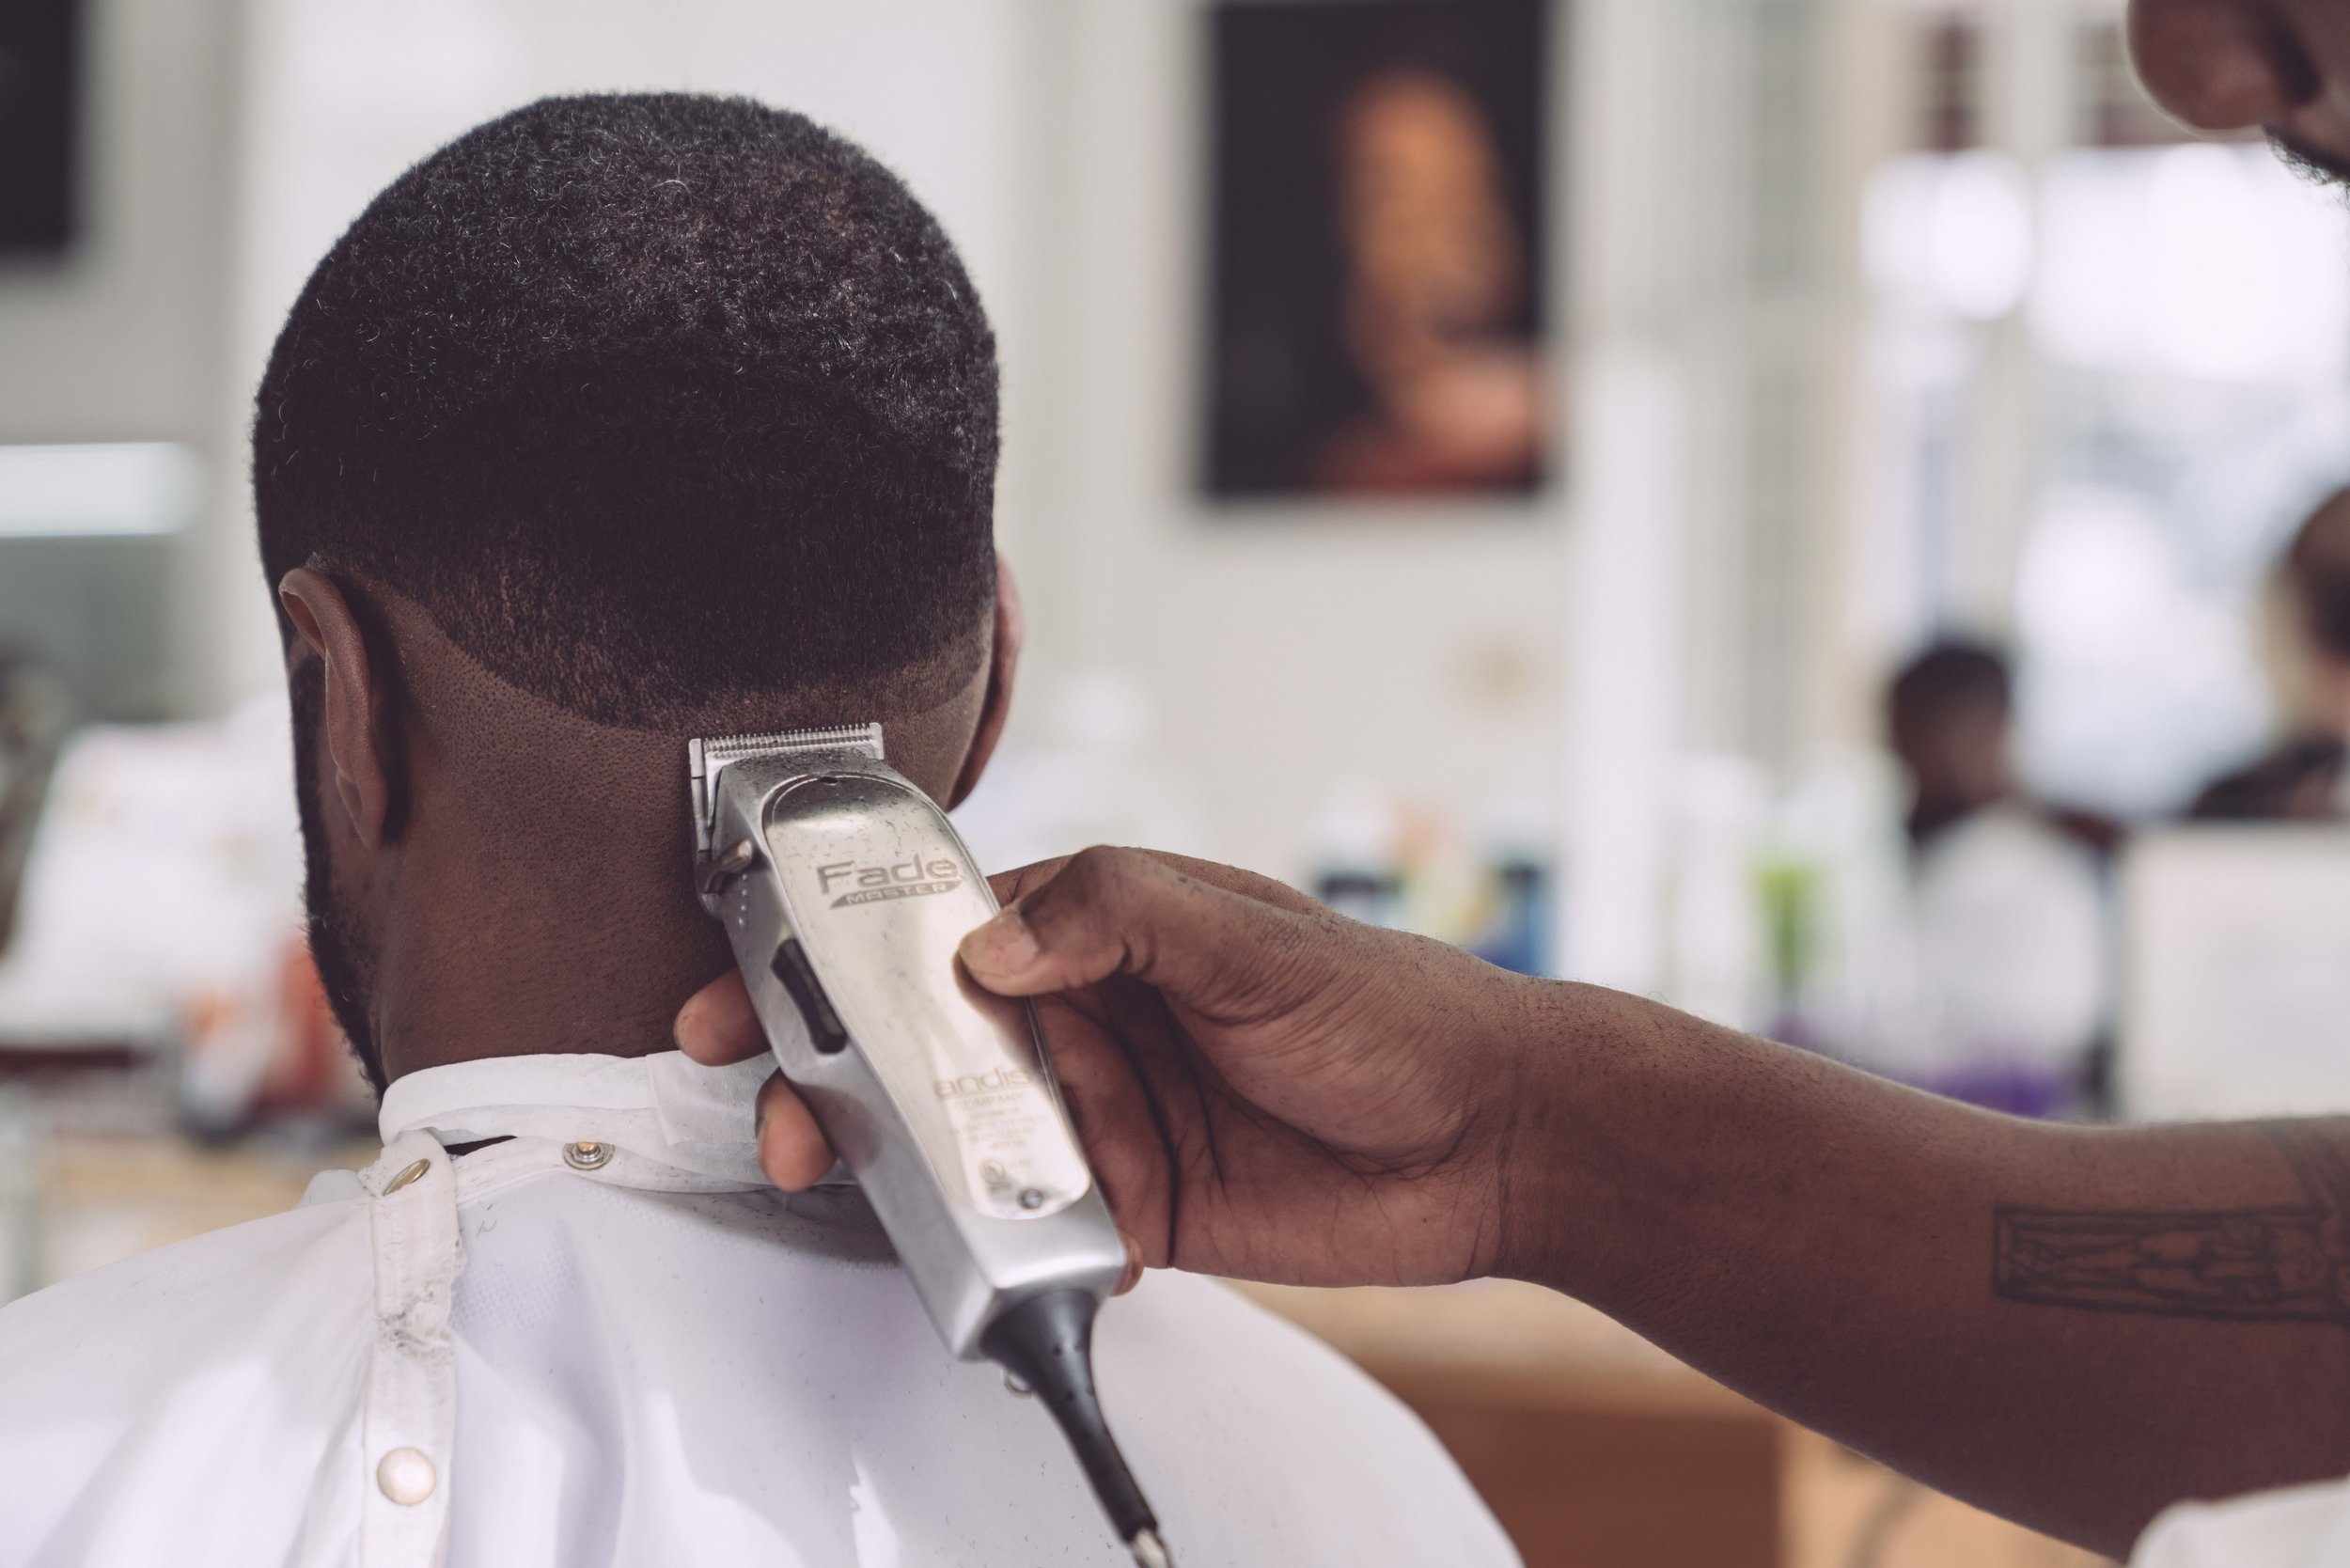 Having a clean hair cut can instantly enhance your look, but most importantly your self-confidence!